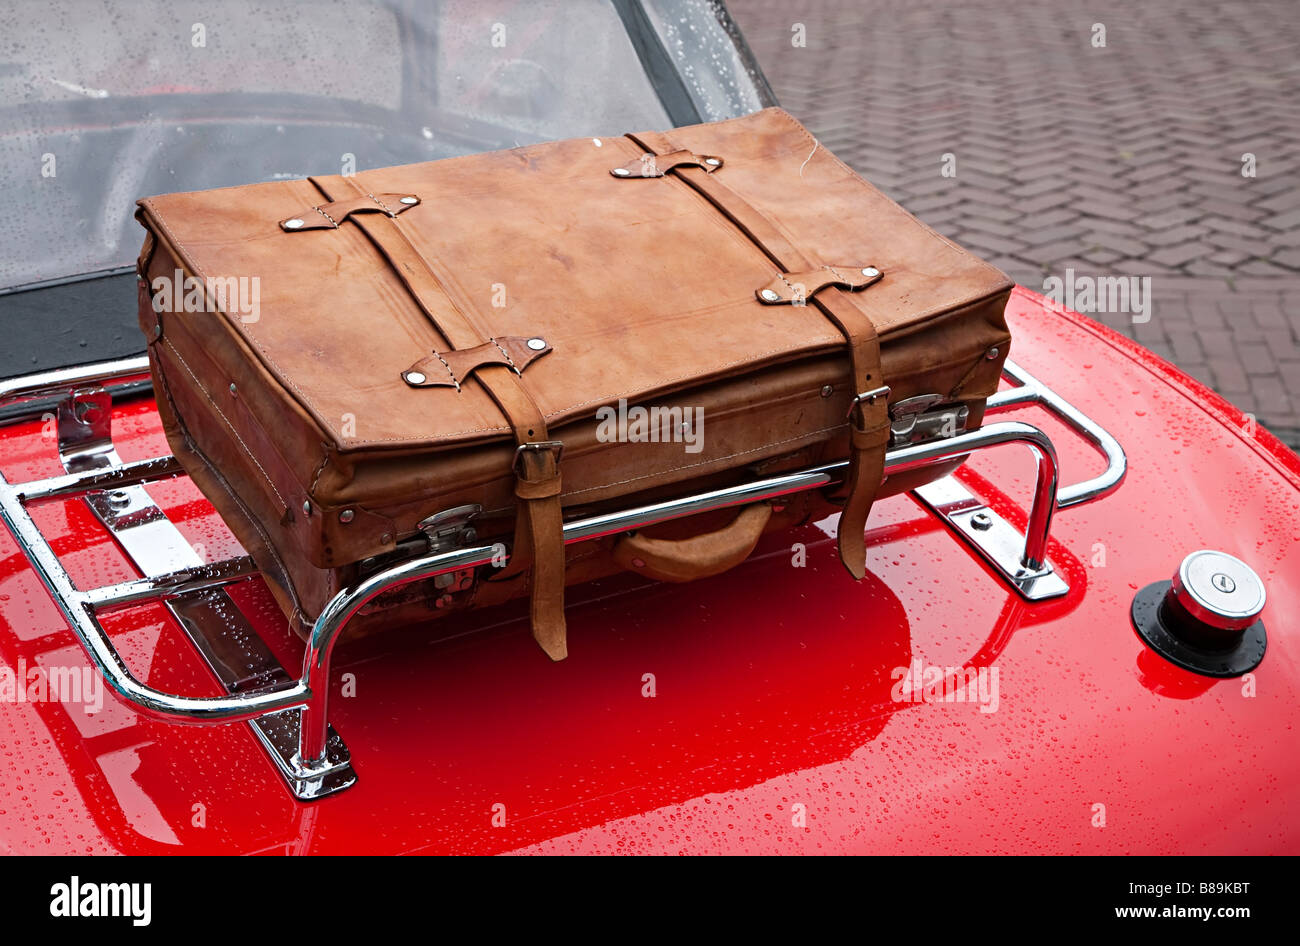 Leather Suitcase Stock Photos & Leather Suitcase Stock Images - Alamy